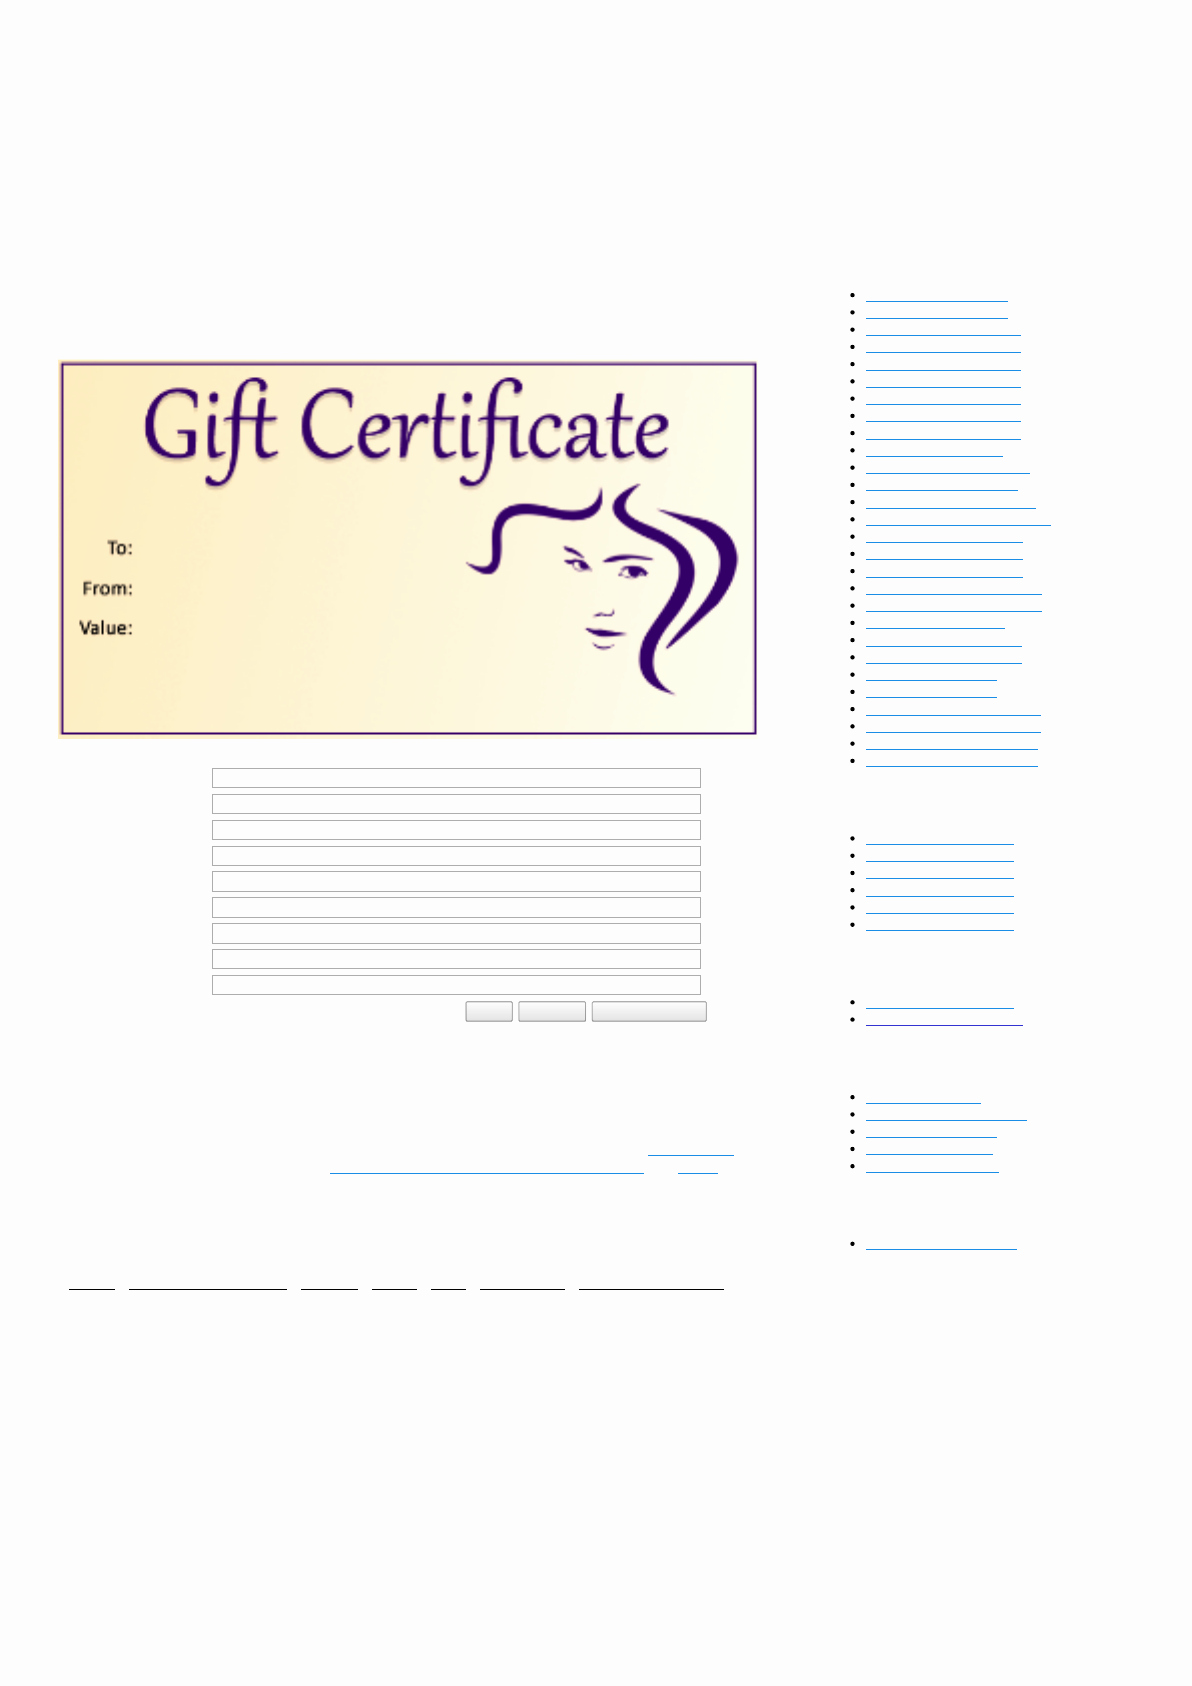 Free Salon Gift Certificate Template New Download Salon Gift Certificate Template for Free